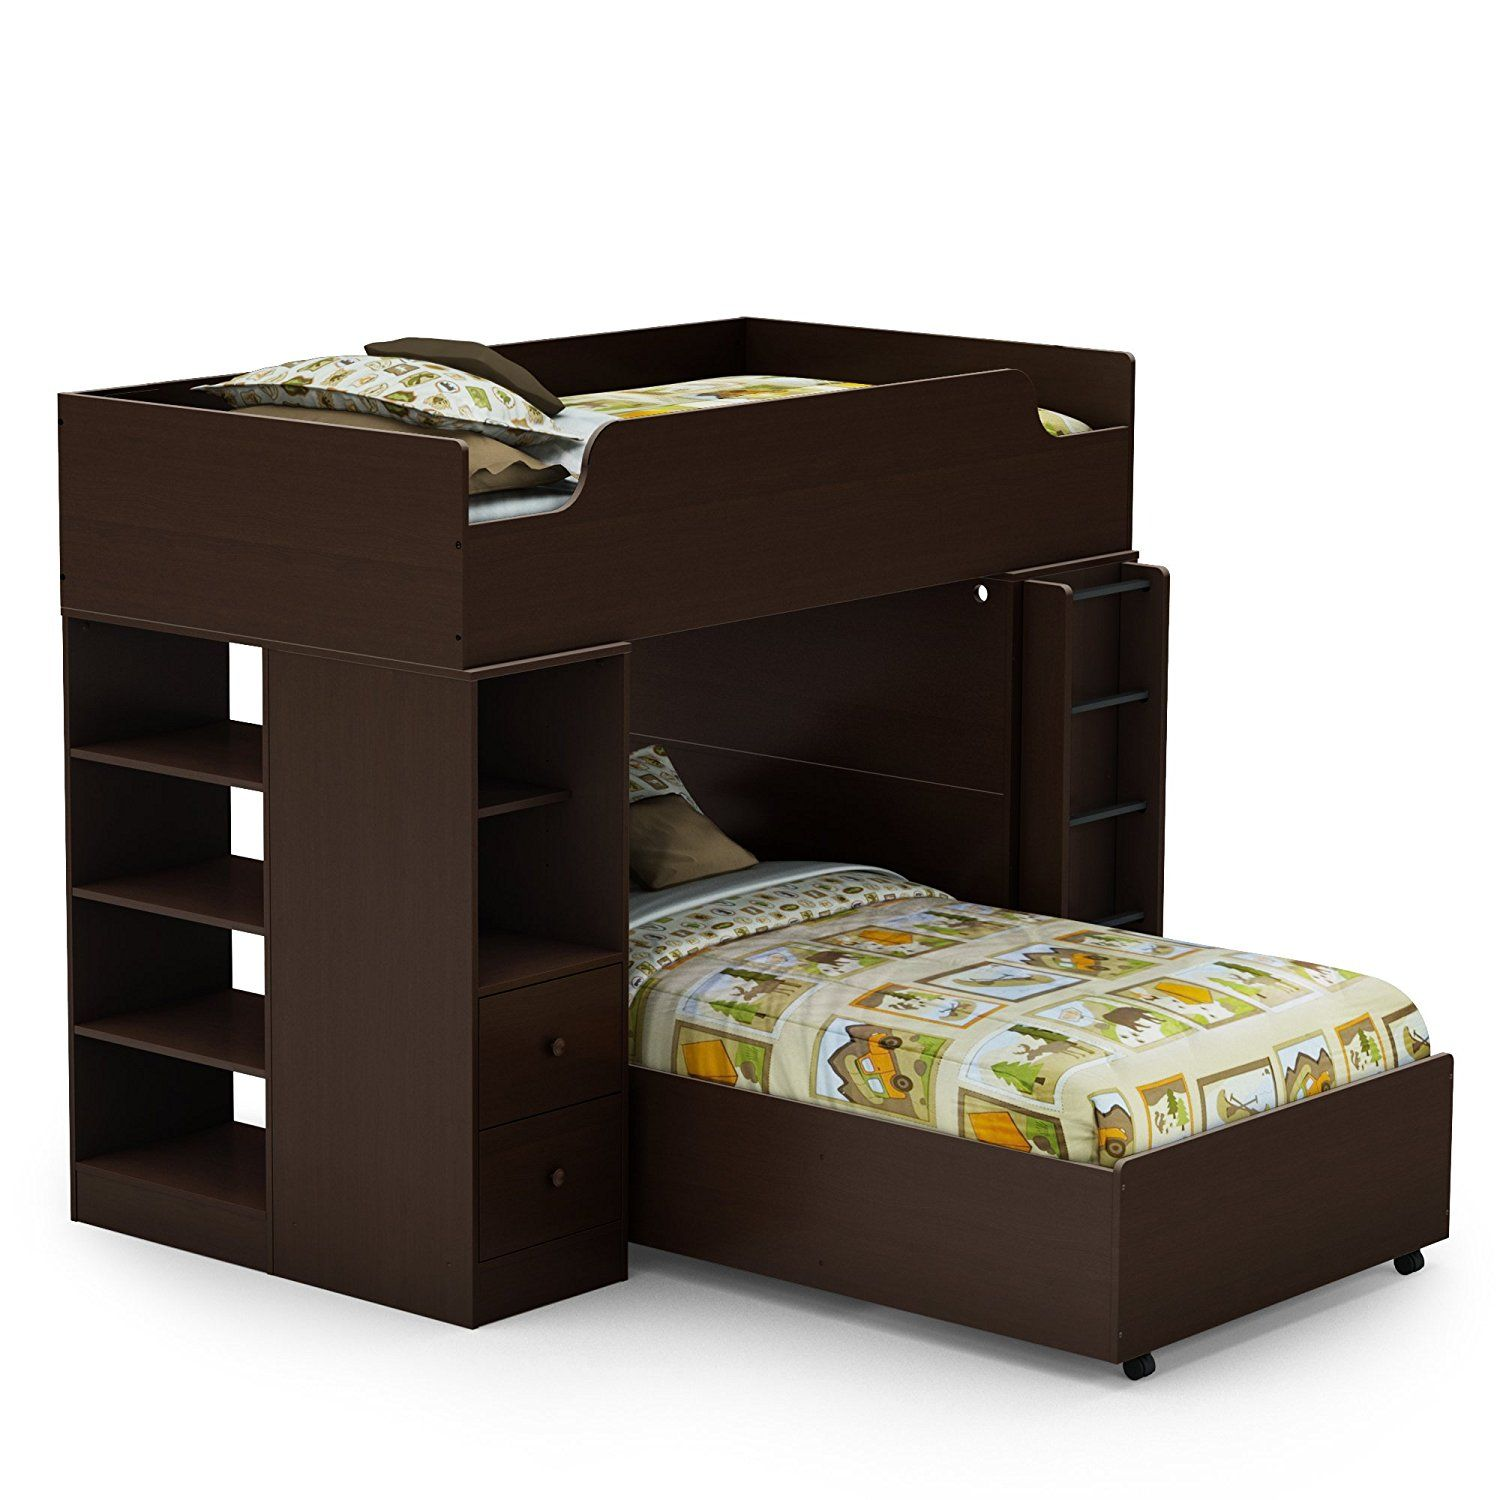 South Shore Logik Collection Twin 39 Inch Loft Bed Kit, Chocolate